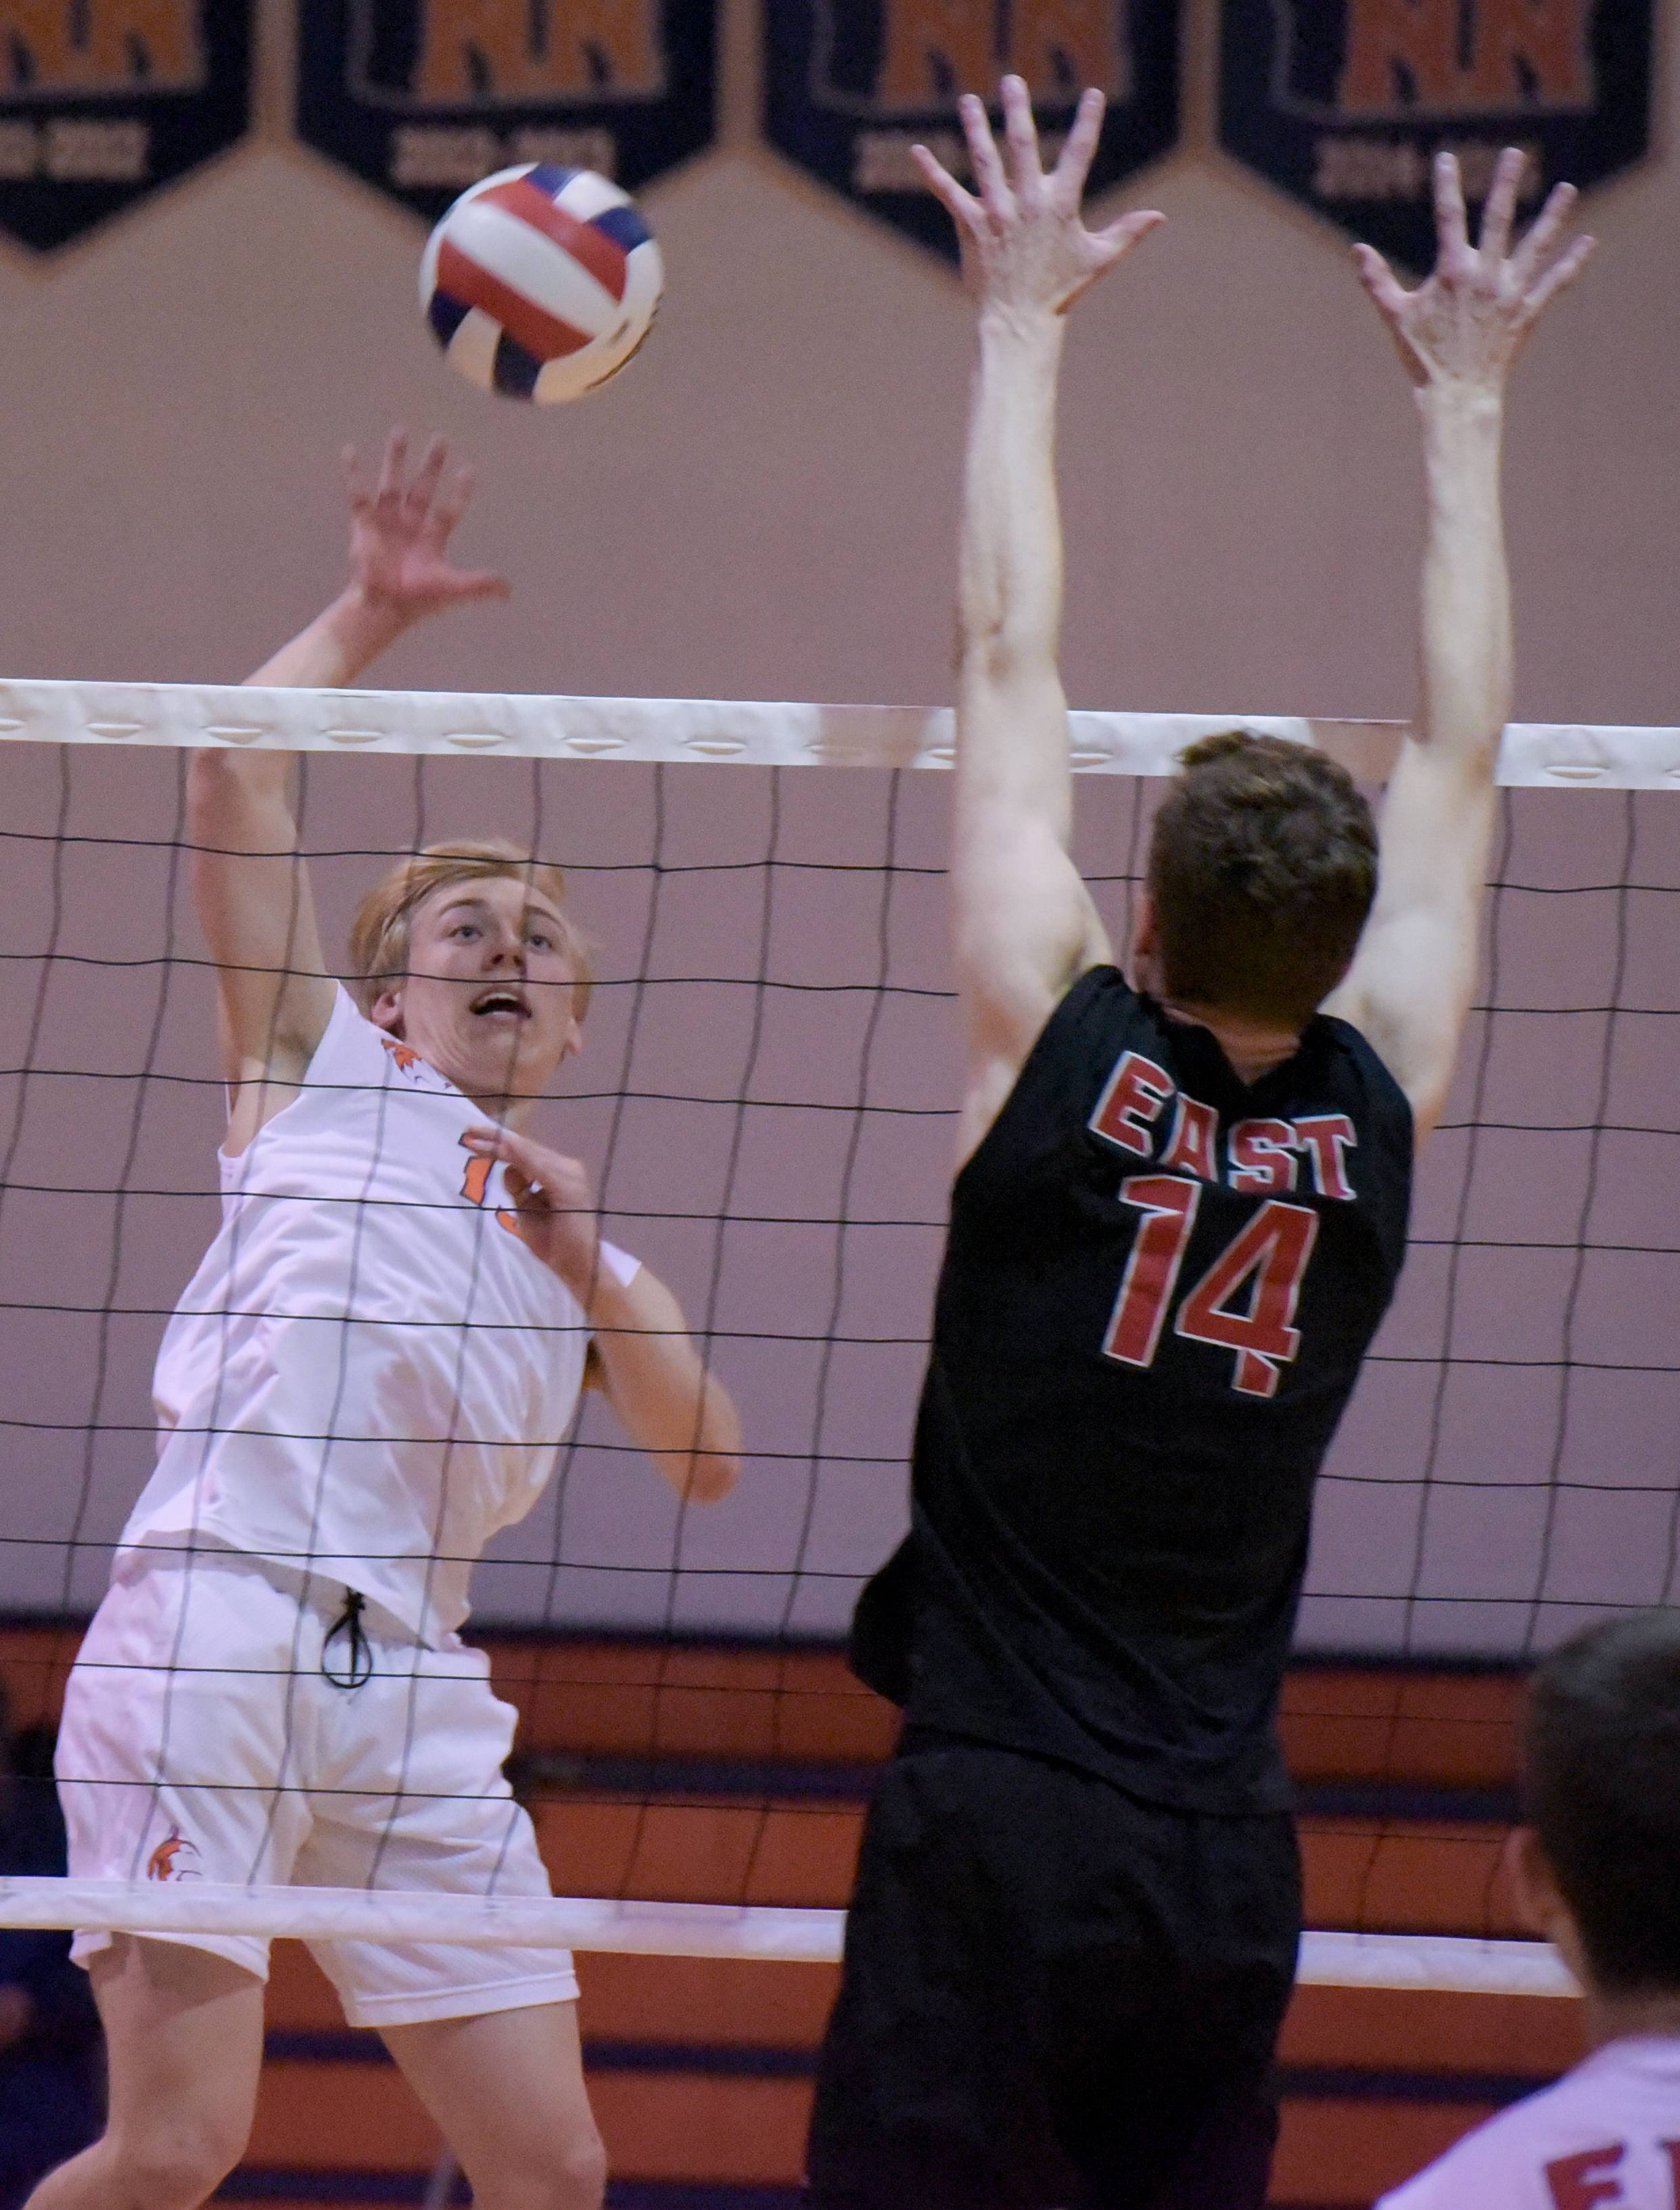 Naperville North's John Jaworski (13) fires a shot past Glenbard East's Carson Brandt (14) during boys volleyball in Naperville on Tuesday, April 3, 2018.